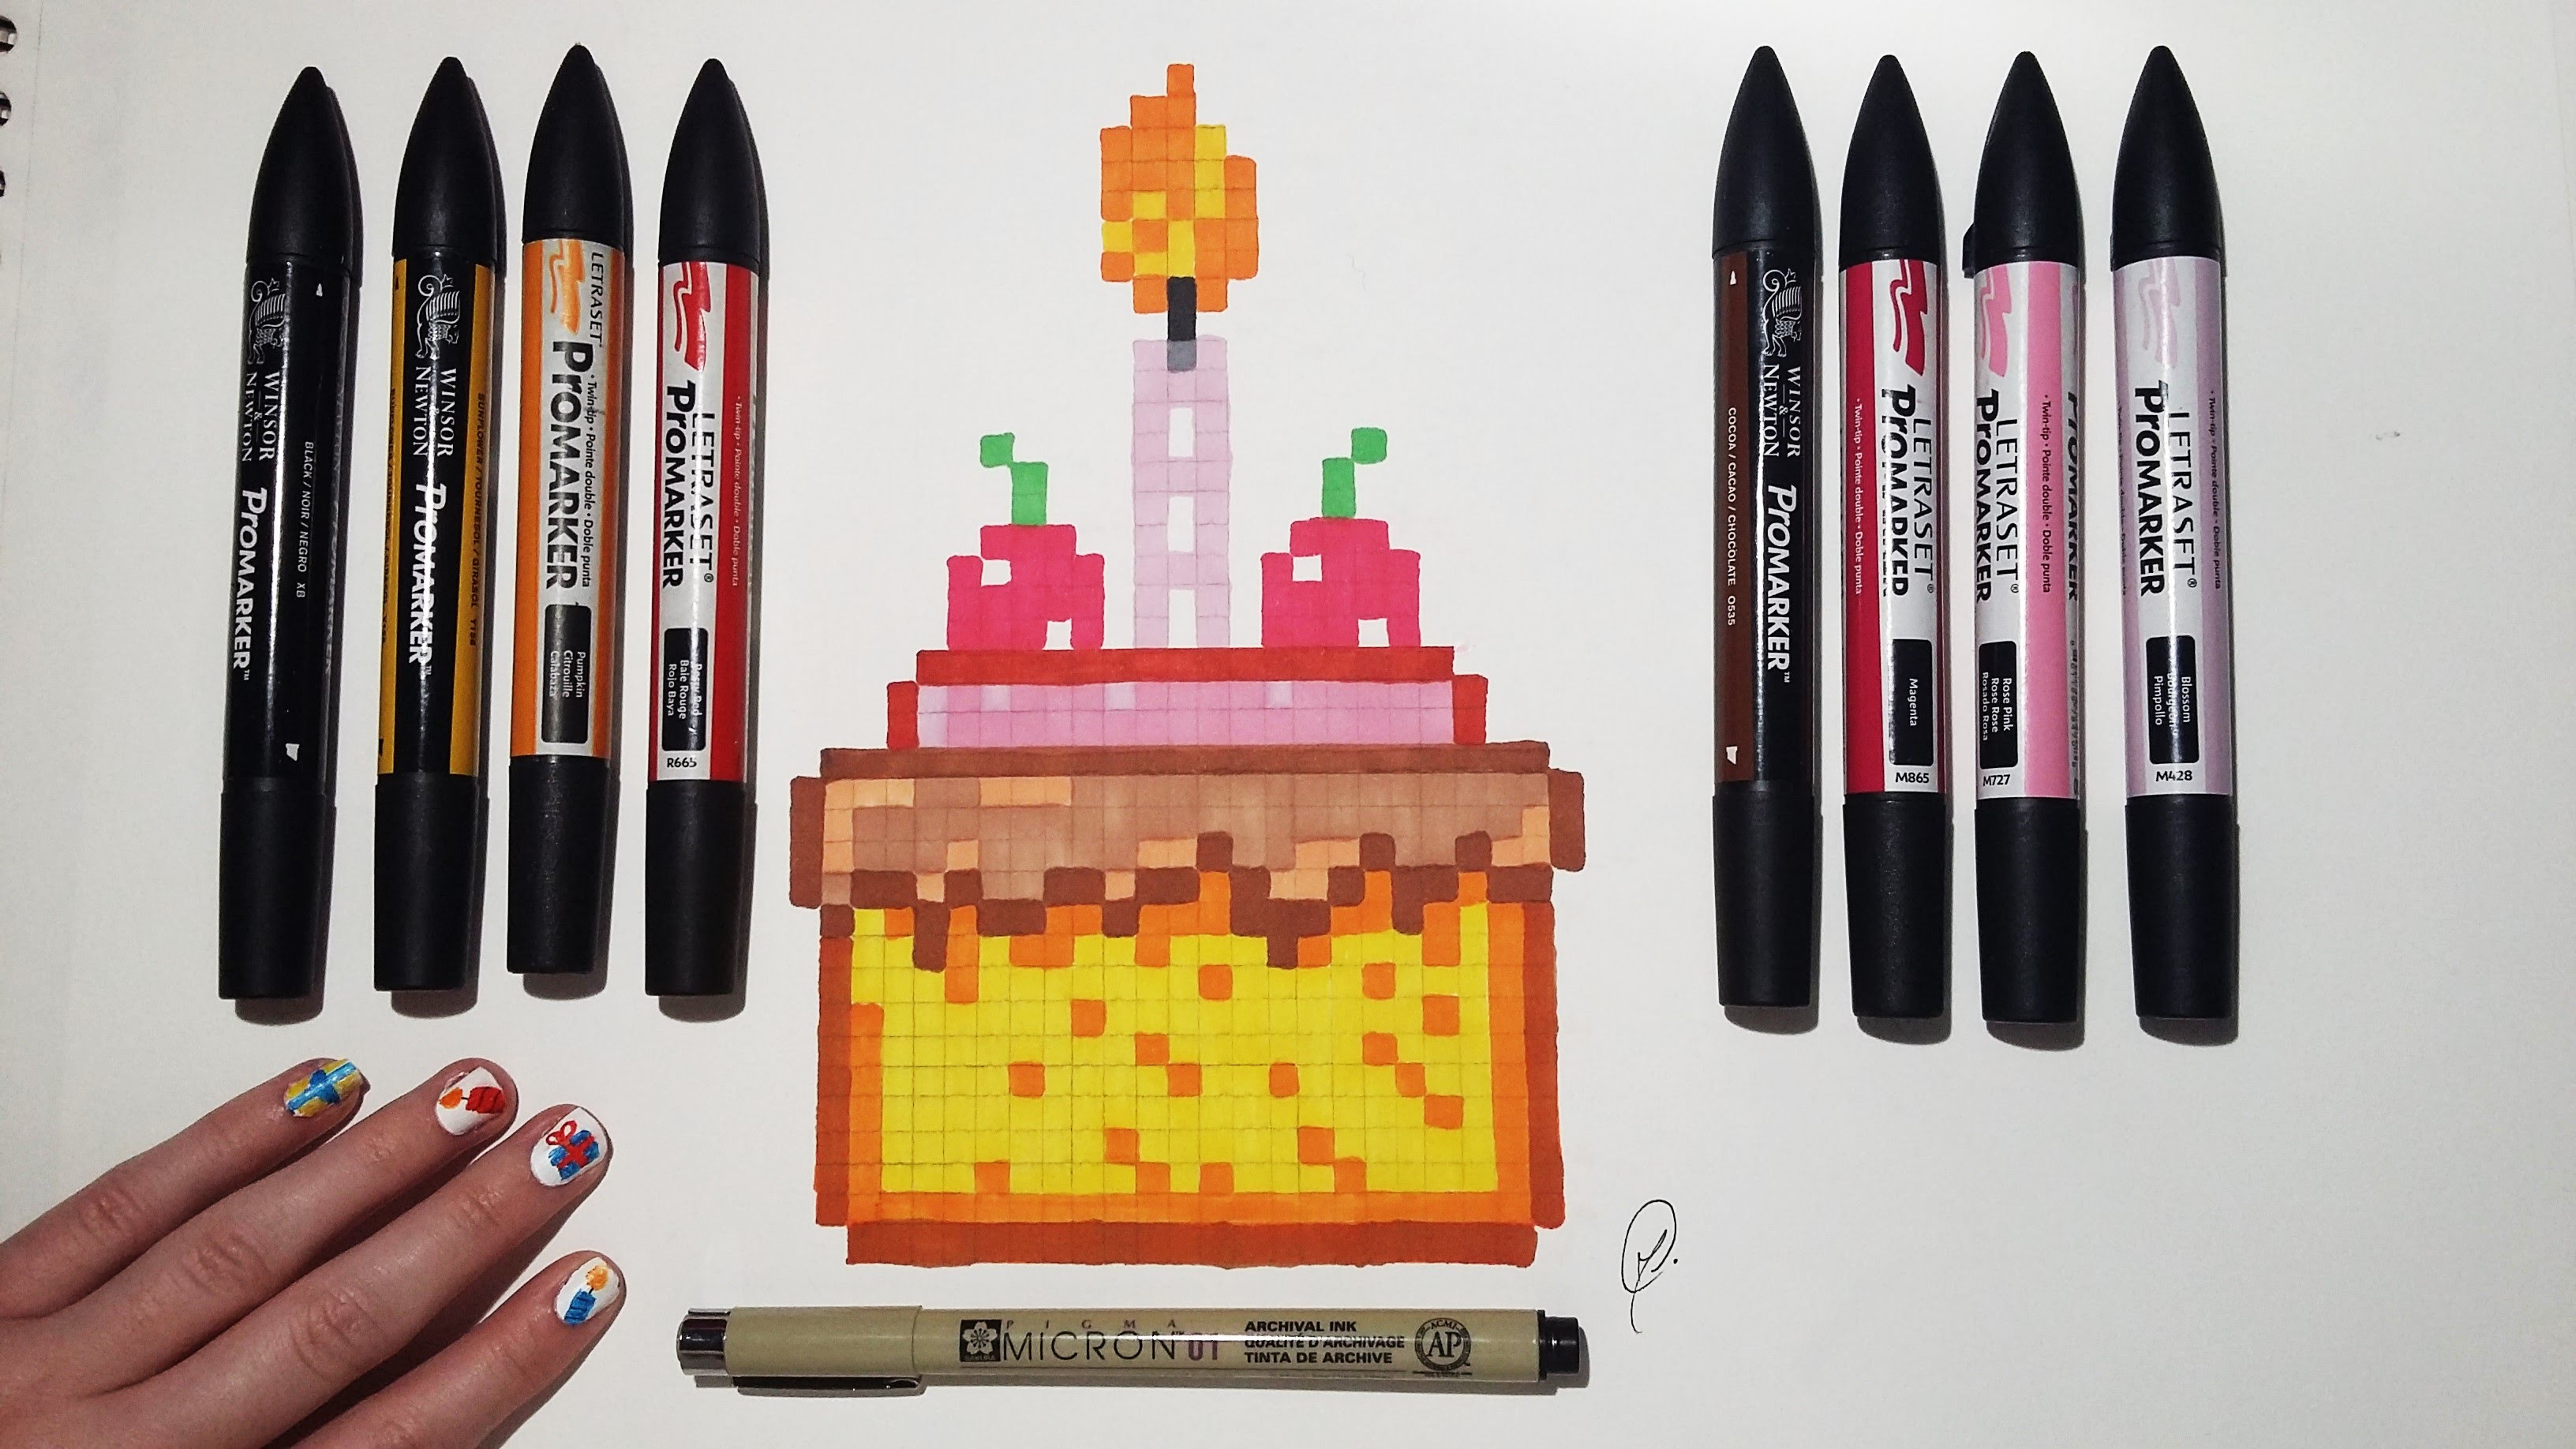 Drawn pixel art pencil #13